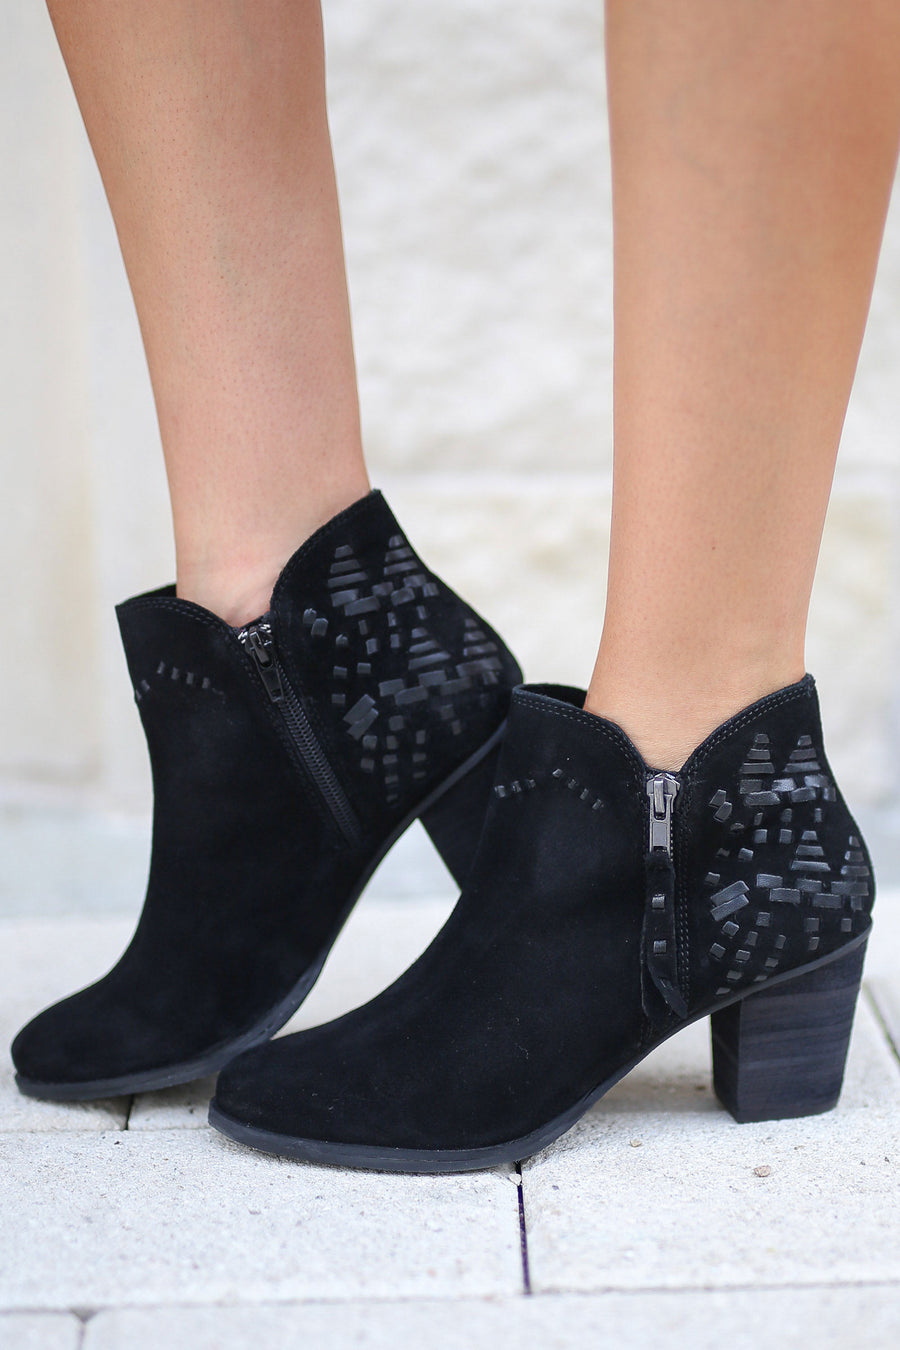 NAUGHTY MONKEY Lupina Suede Booties - Black ankle boots with details on back and heel closet candy boutique 1